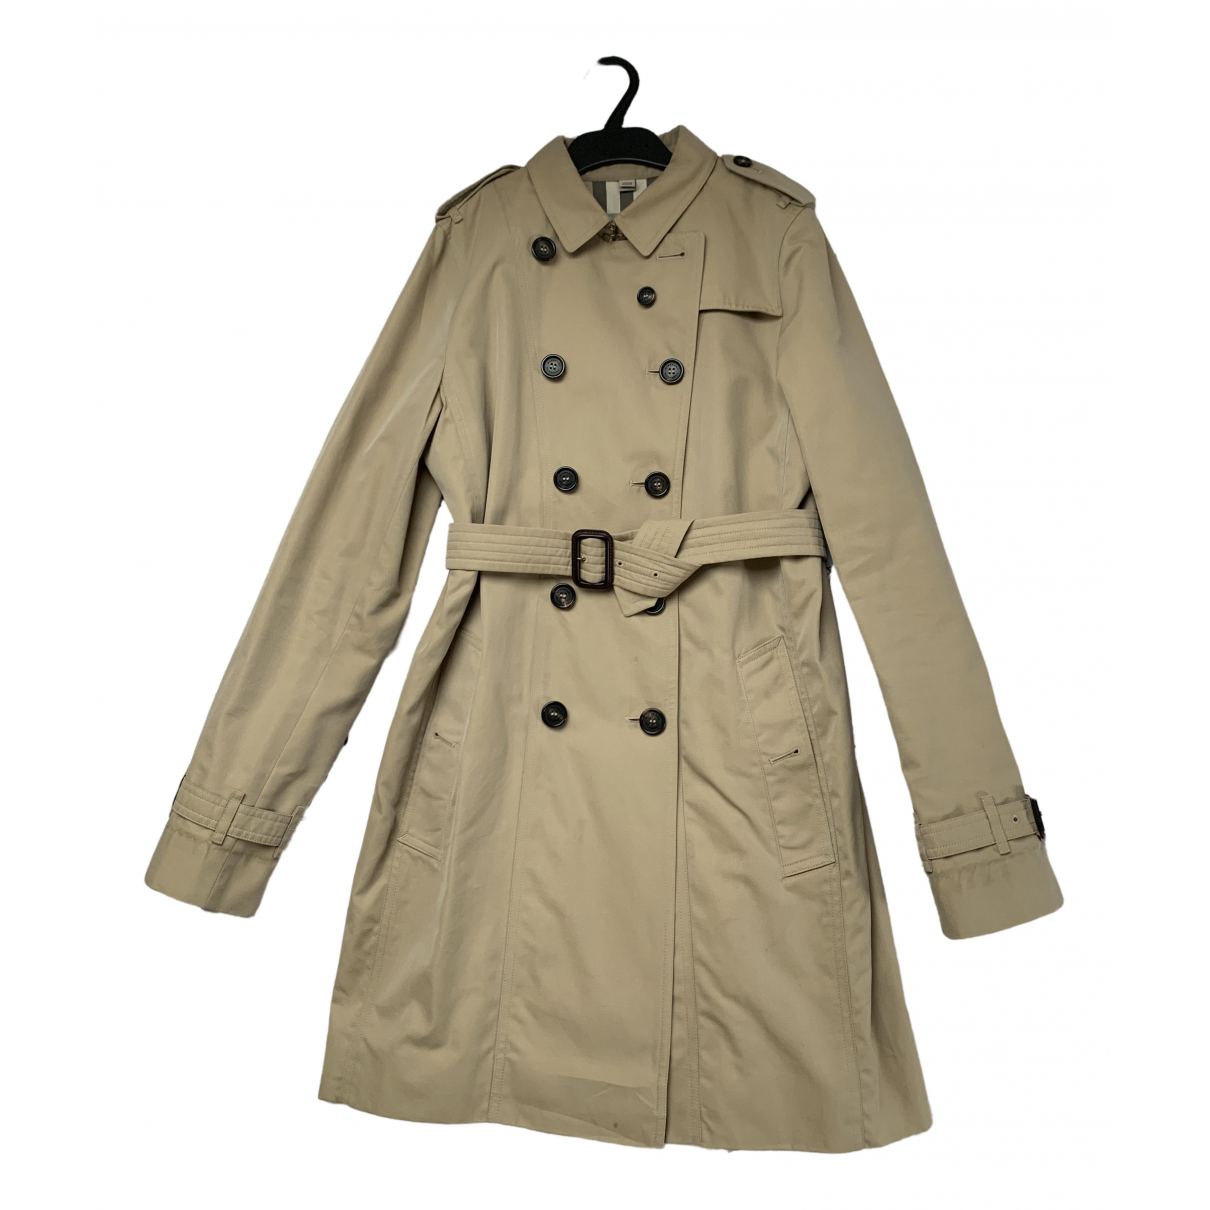 Burberry \N Beige Cotton jacket & coat for Kids 14 years - S FR